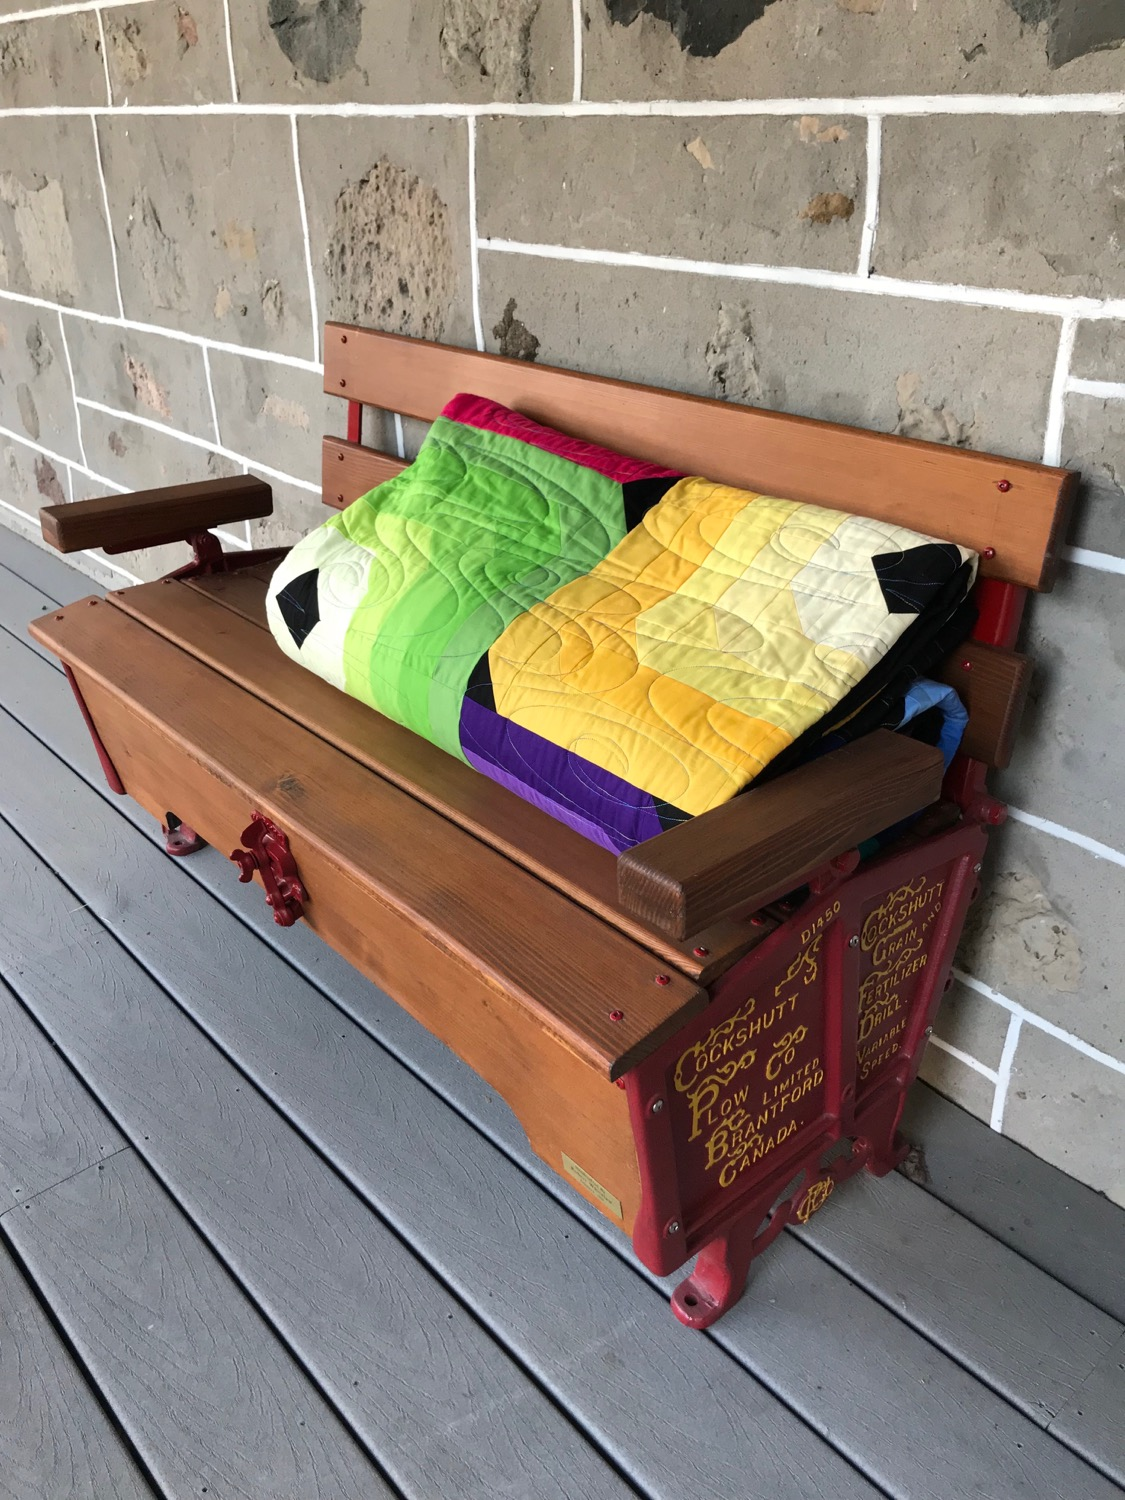 This bench was a gift from my father-in-law...he built it for my birthday this past year! Doesn't it make a great quilt backdrop? I love it!!